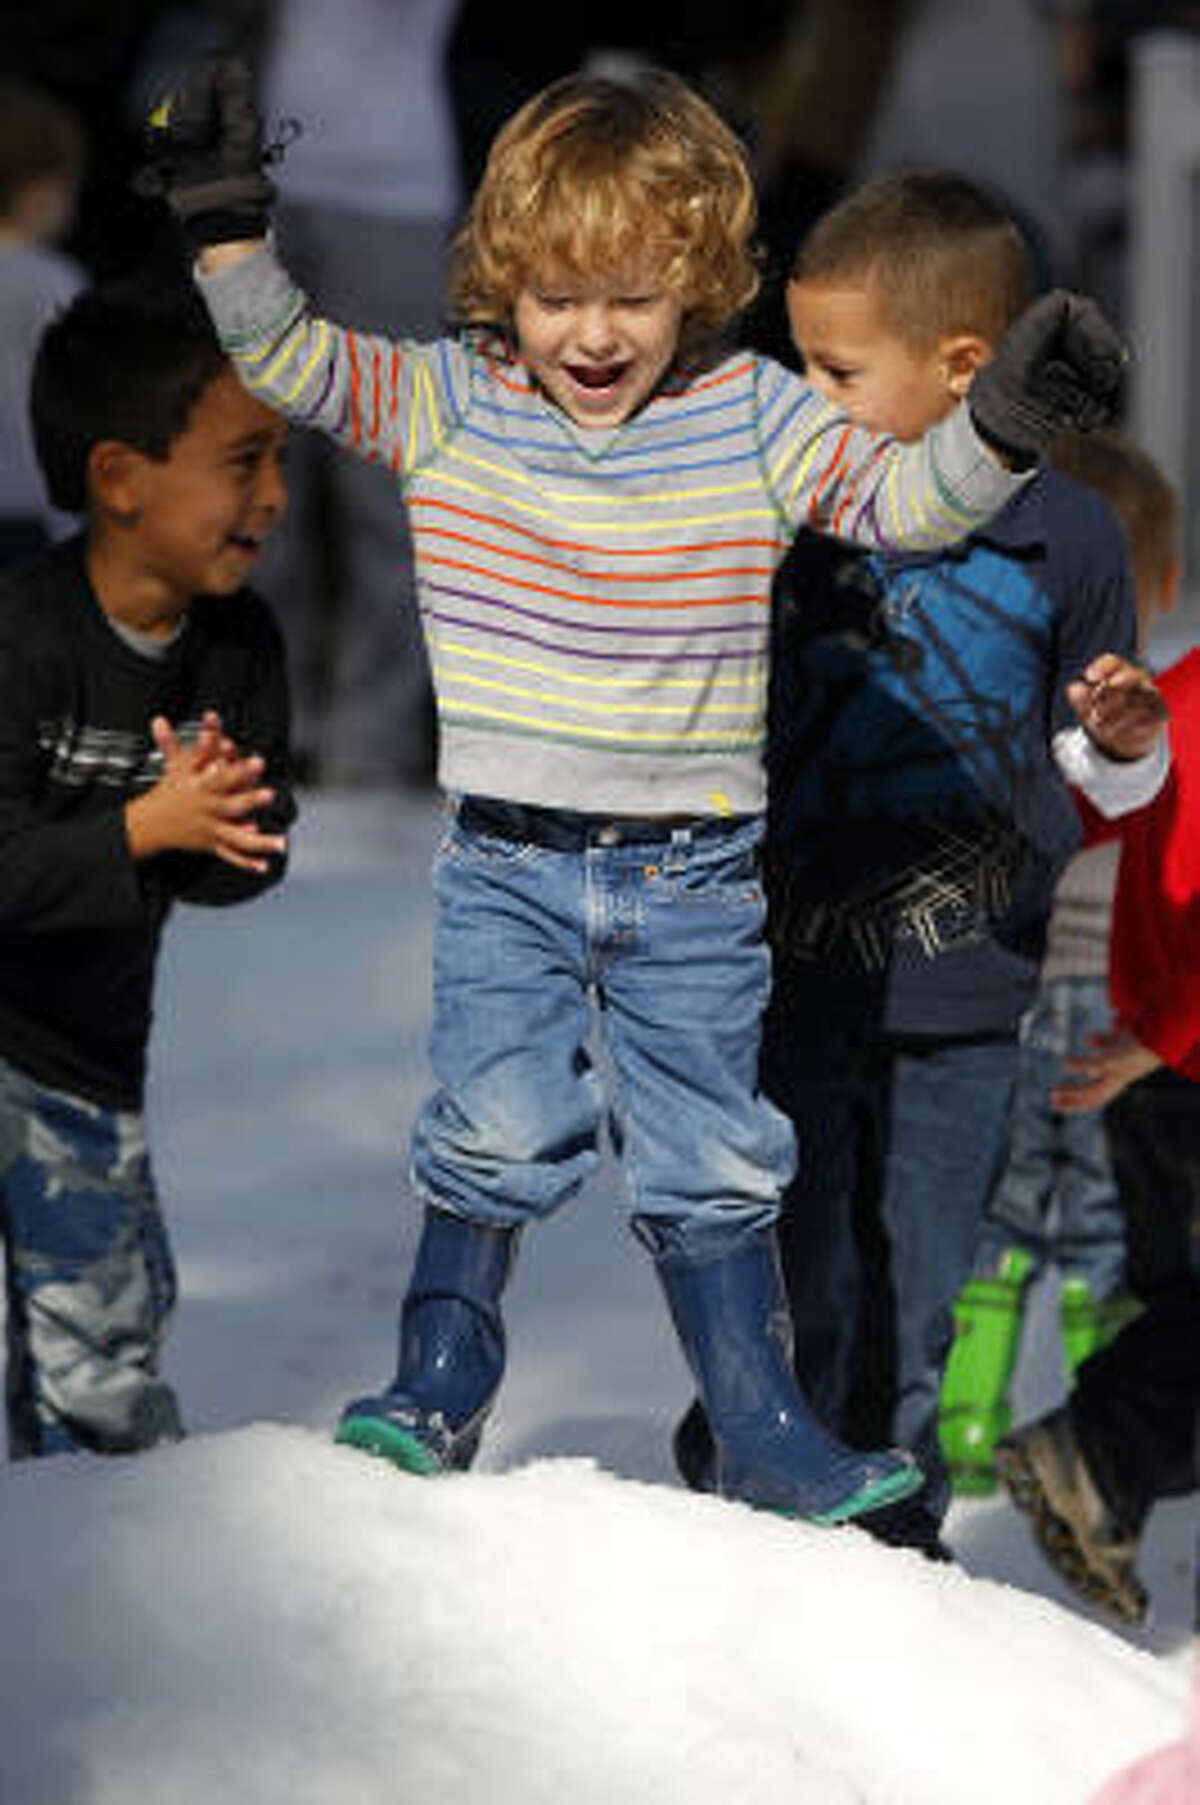 Eli Saldana, 3, of Houston, plays during the Annual Snow Flurry at the Houston Museum of Natural Science.